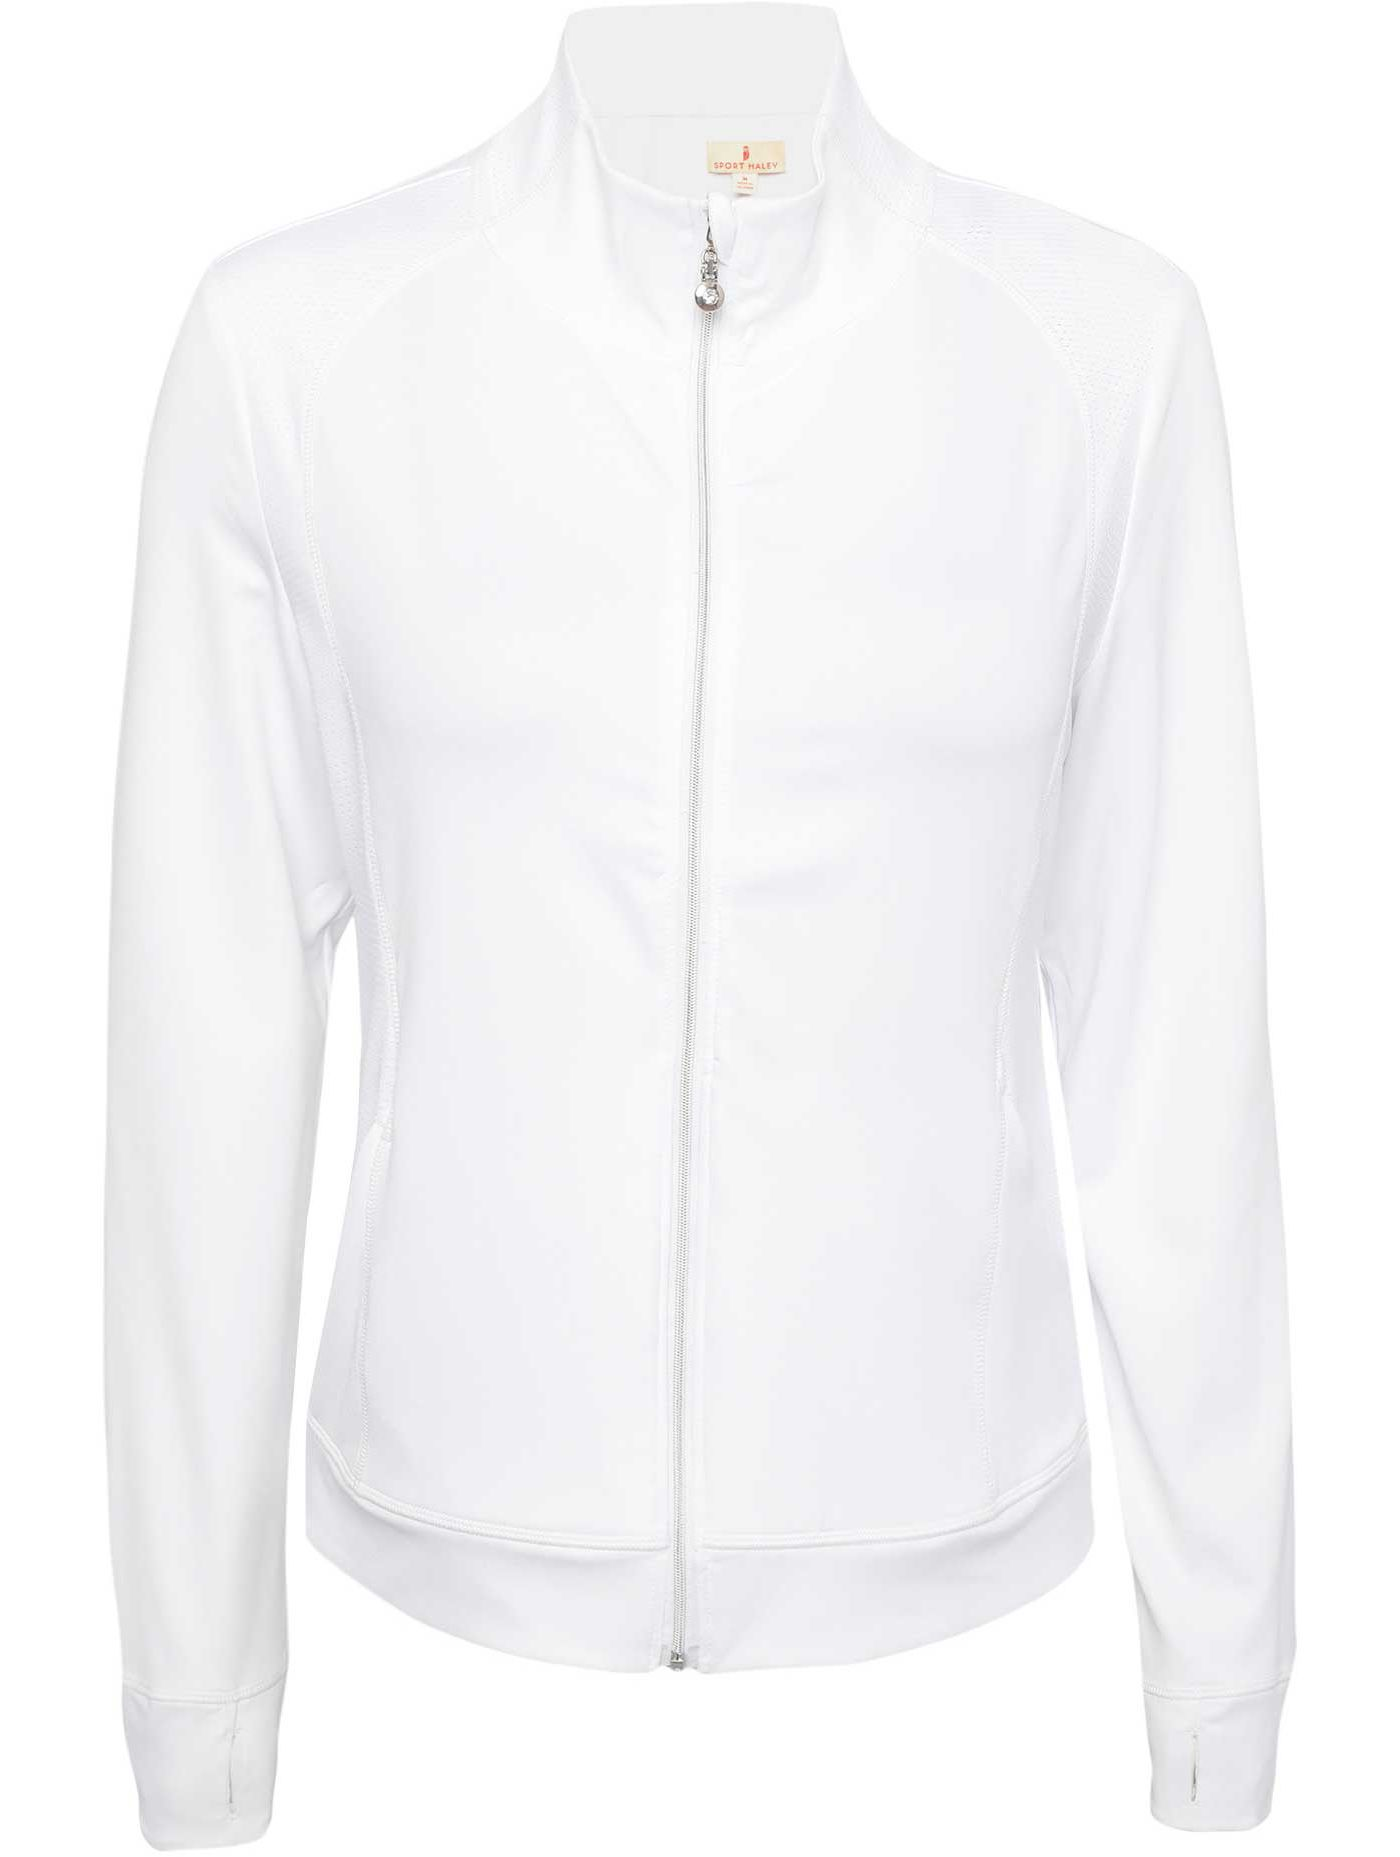 Sport Haley Women's Harper Golf Jacket